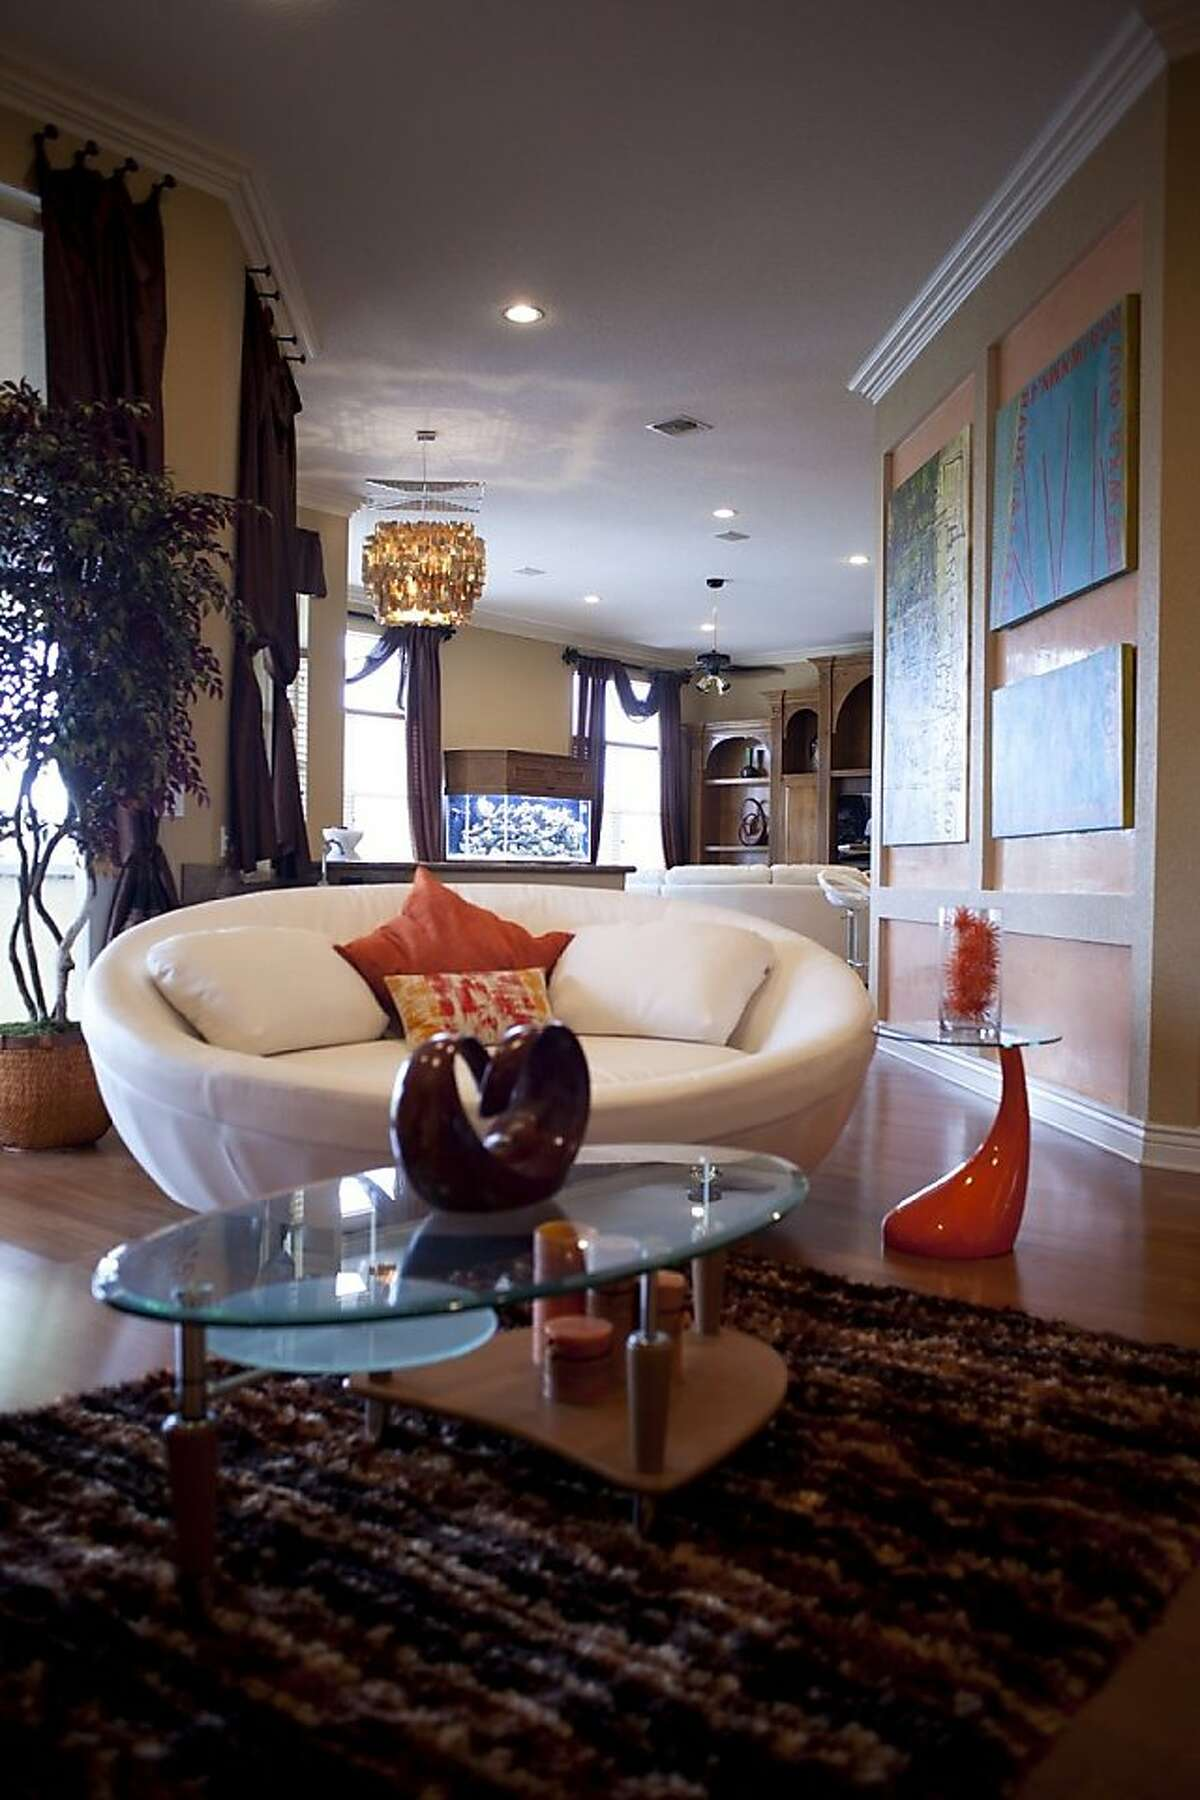 Miami Dolphins cornerback Sean Smith's living room, characterized by geometrical designs and bold colors, is anchored by what designer Antone Barnes calls a